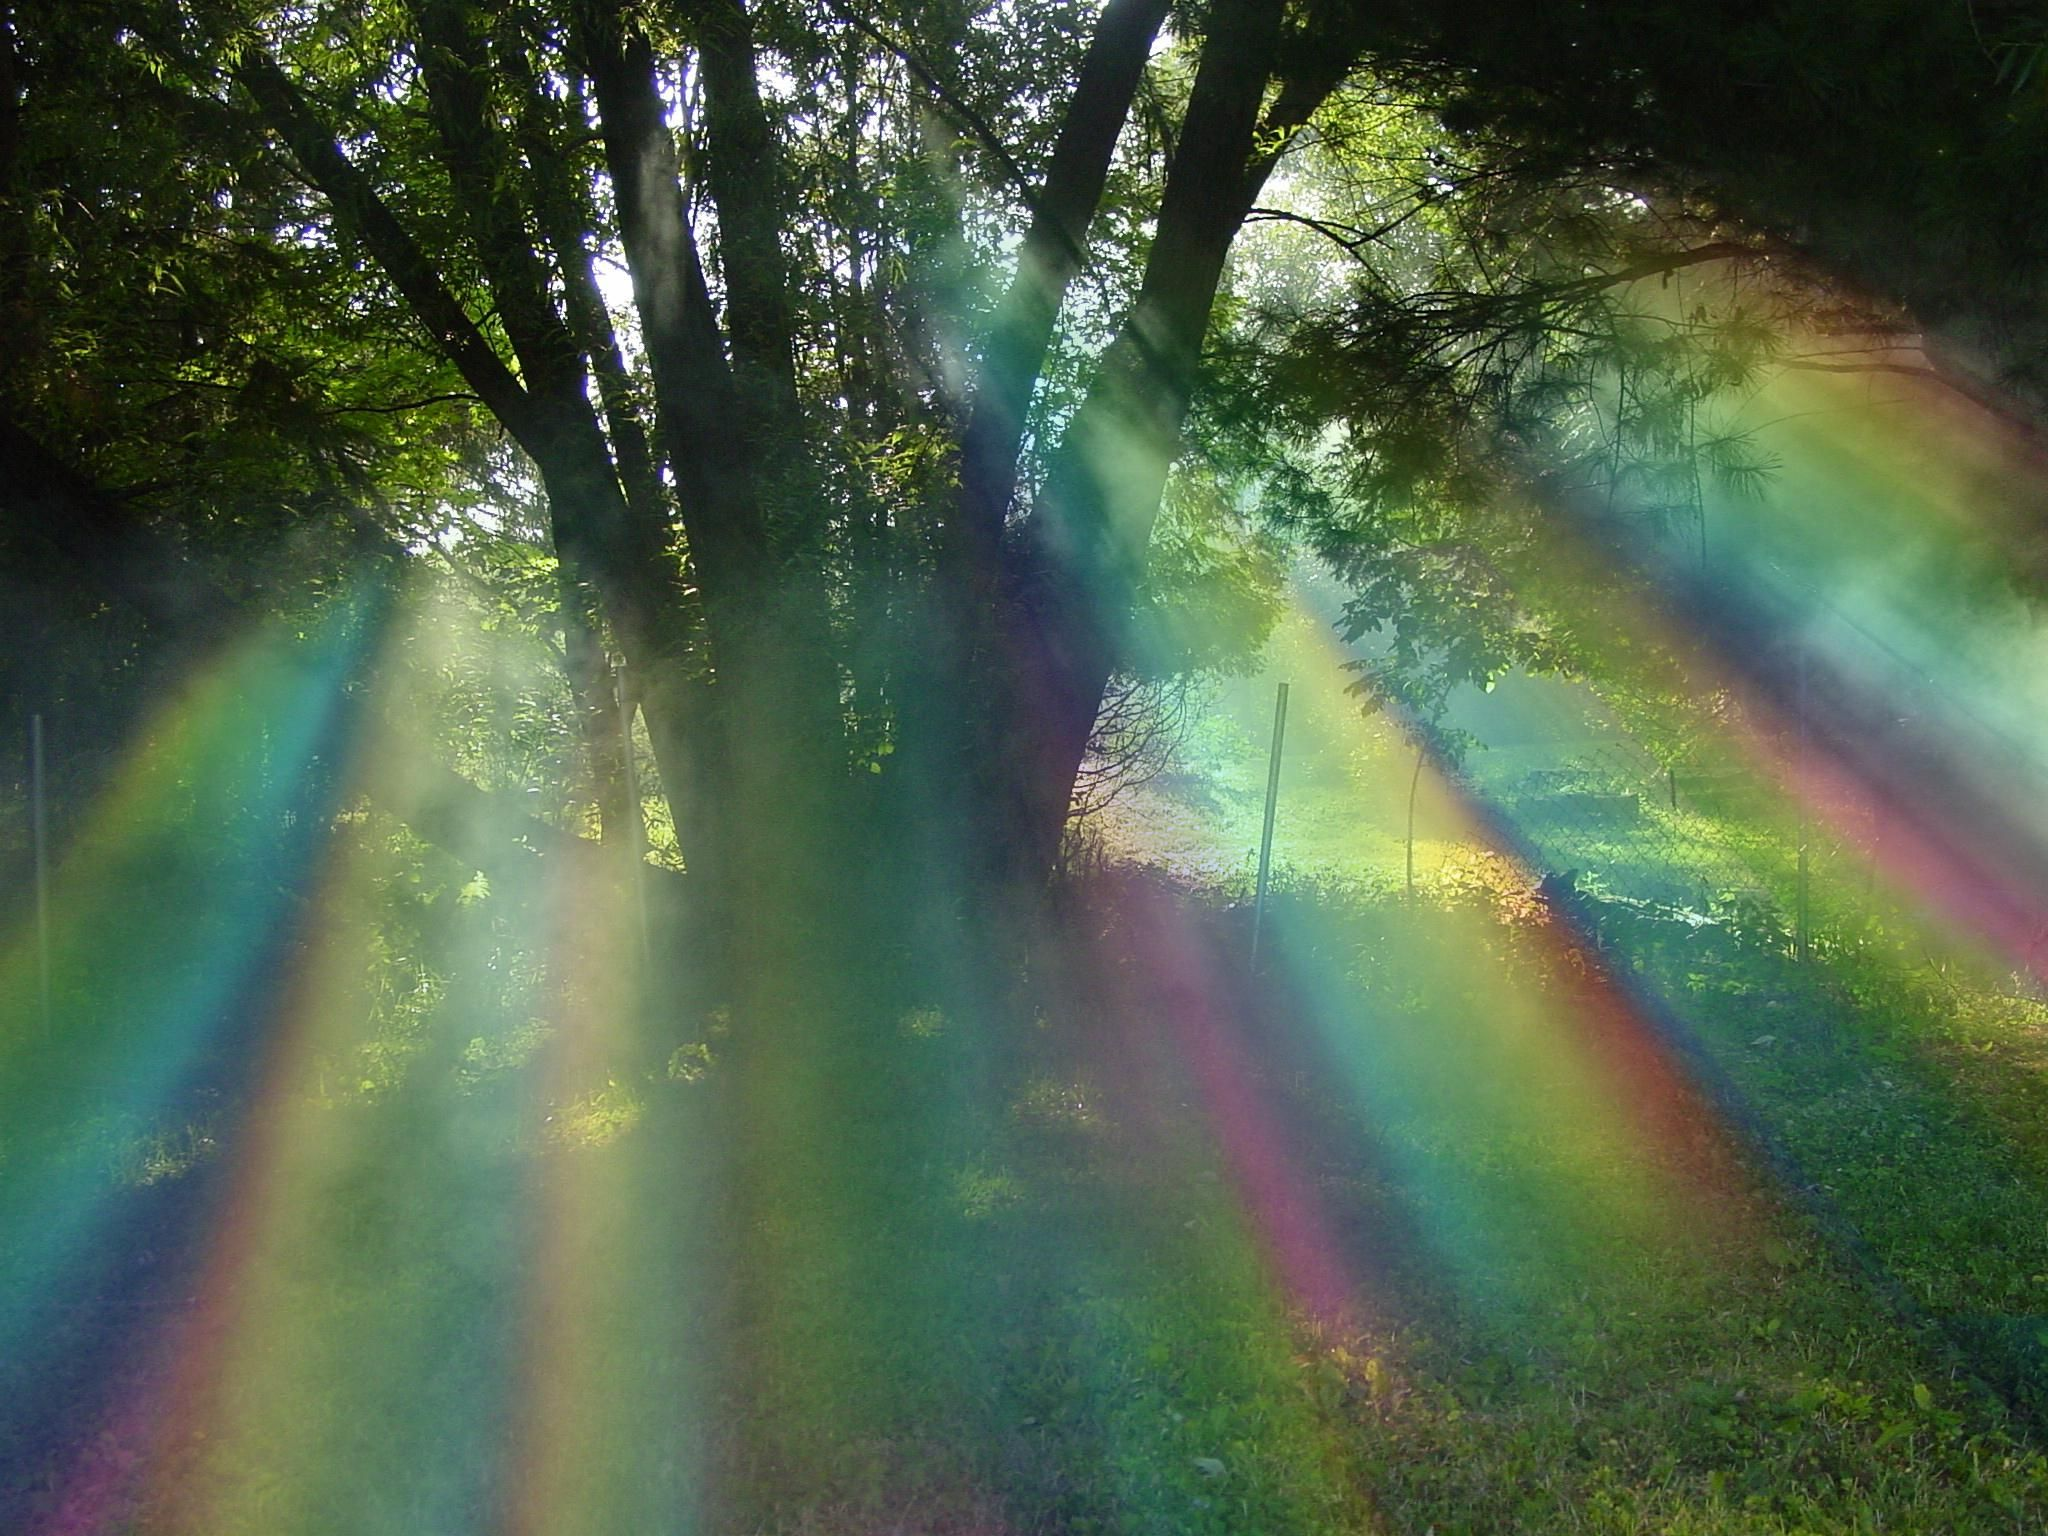 Willow tree with magnificent rainbow colors | My Sacred Trees ...